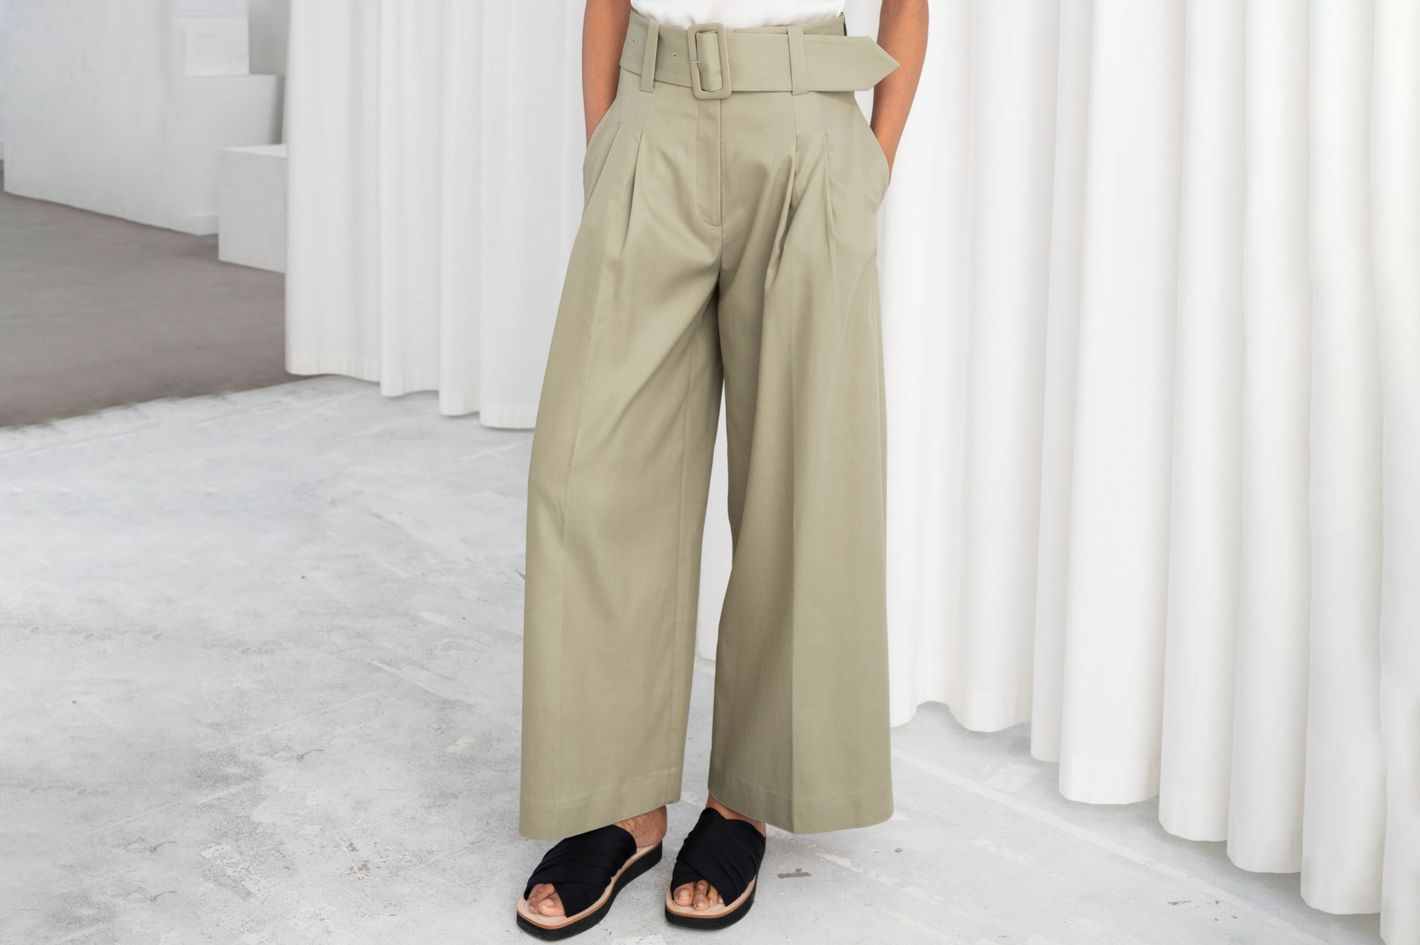 & Other Stories High Waisted Belted Flare Pants